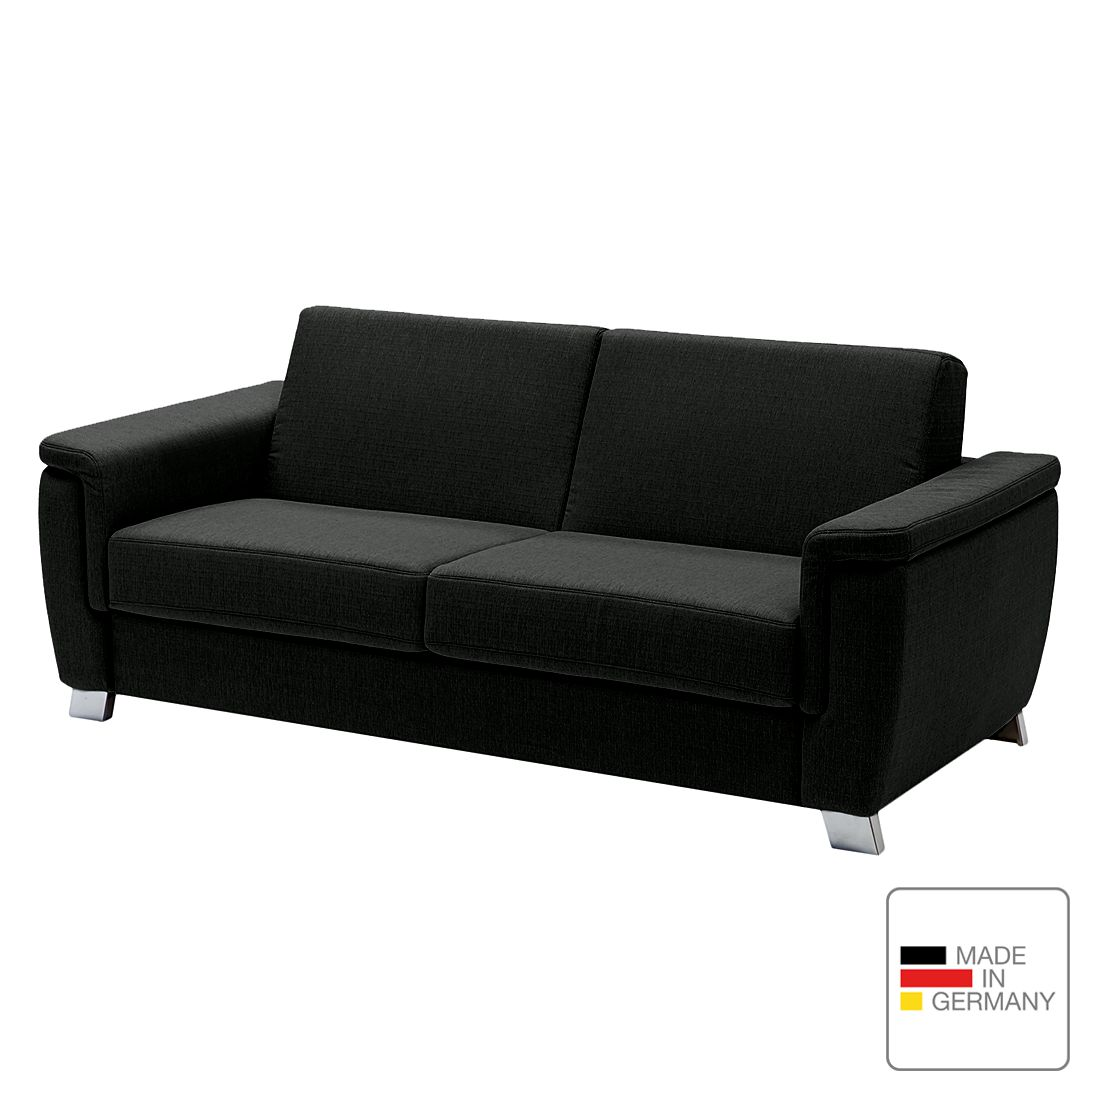 schlafsofa pidaro ii webstoff kaltschaum schwarz. Black Bedroom Furniture Sets. Home Design Ideas